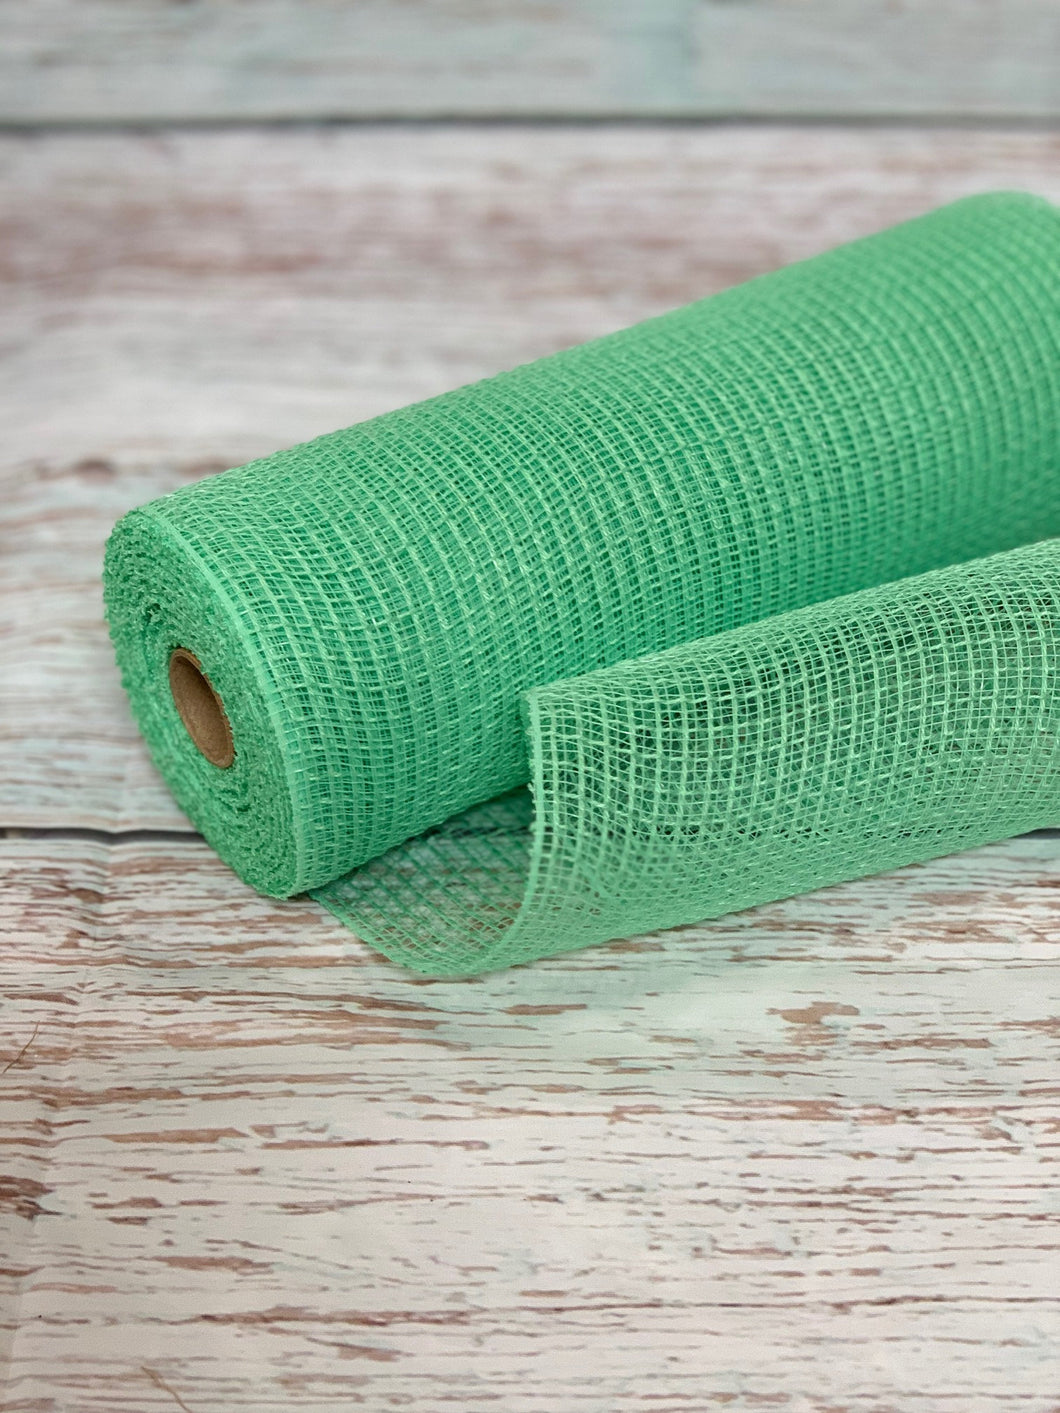 10 inch mint Fabric Mesh. Pastel mesh. Sea foam green mesh.  Designer DIY offers metallic mesh, jute mesh, burlap mesh, fabric mesh, poly mesh. Perfect for a wreath, garland, swag, etc.